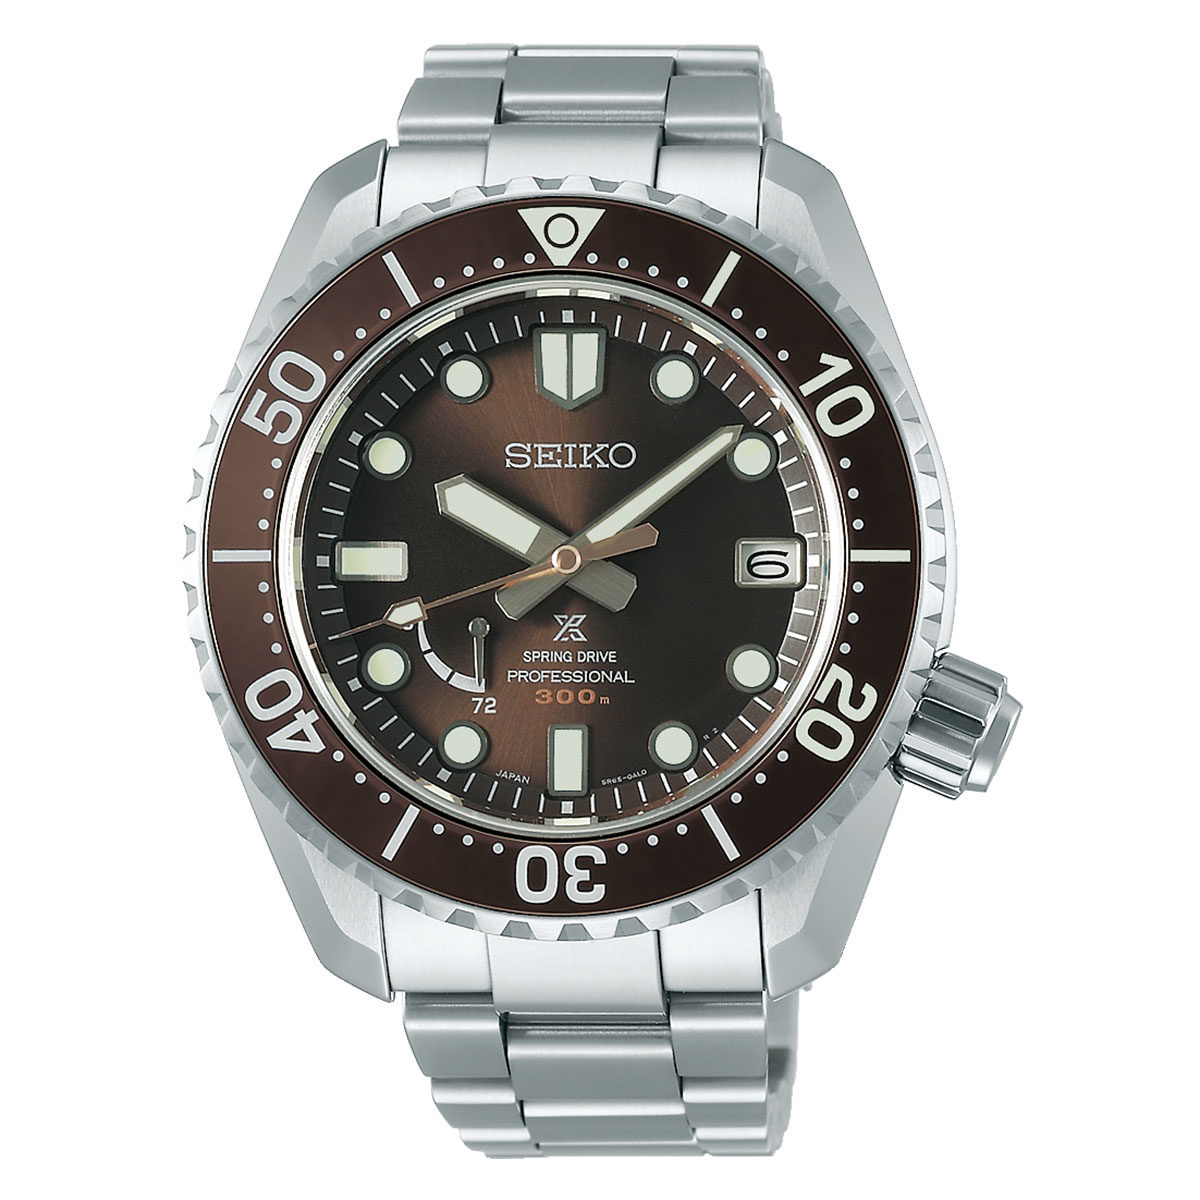 Seiko Prospex LX Line Diver's Limited Edition SNR041J1 watches reviews